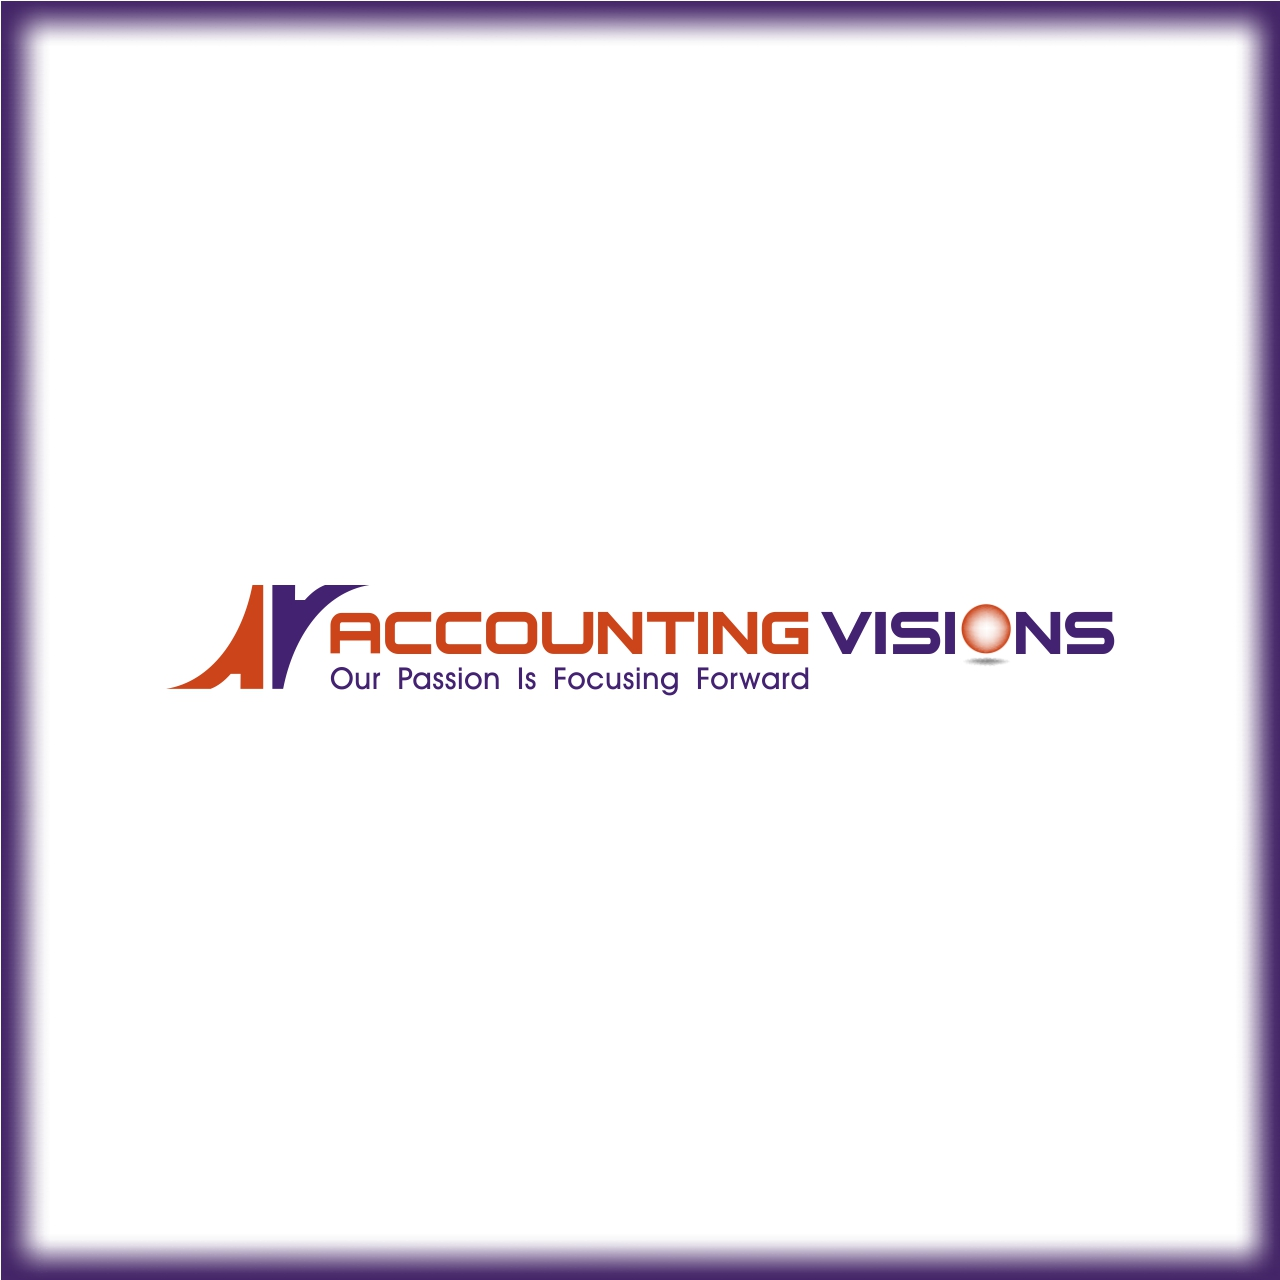 Logo Design by martinz - Entry No. 44 in the Logo Design Contest Accounting Visions.